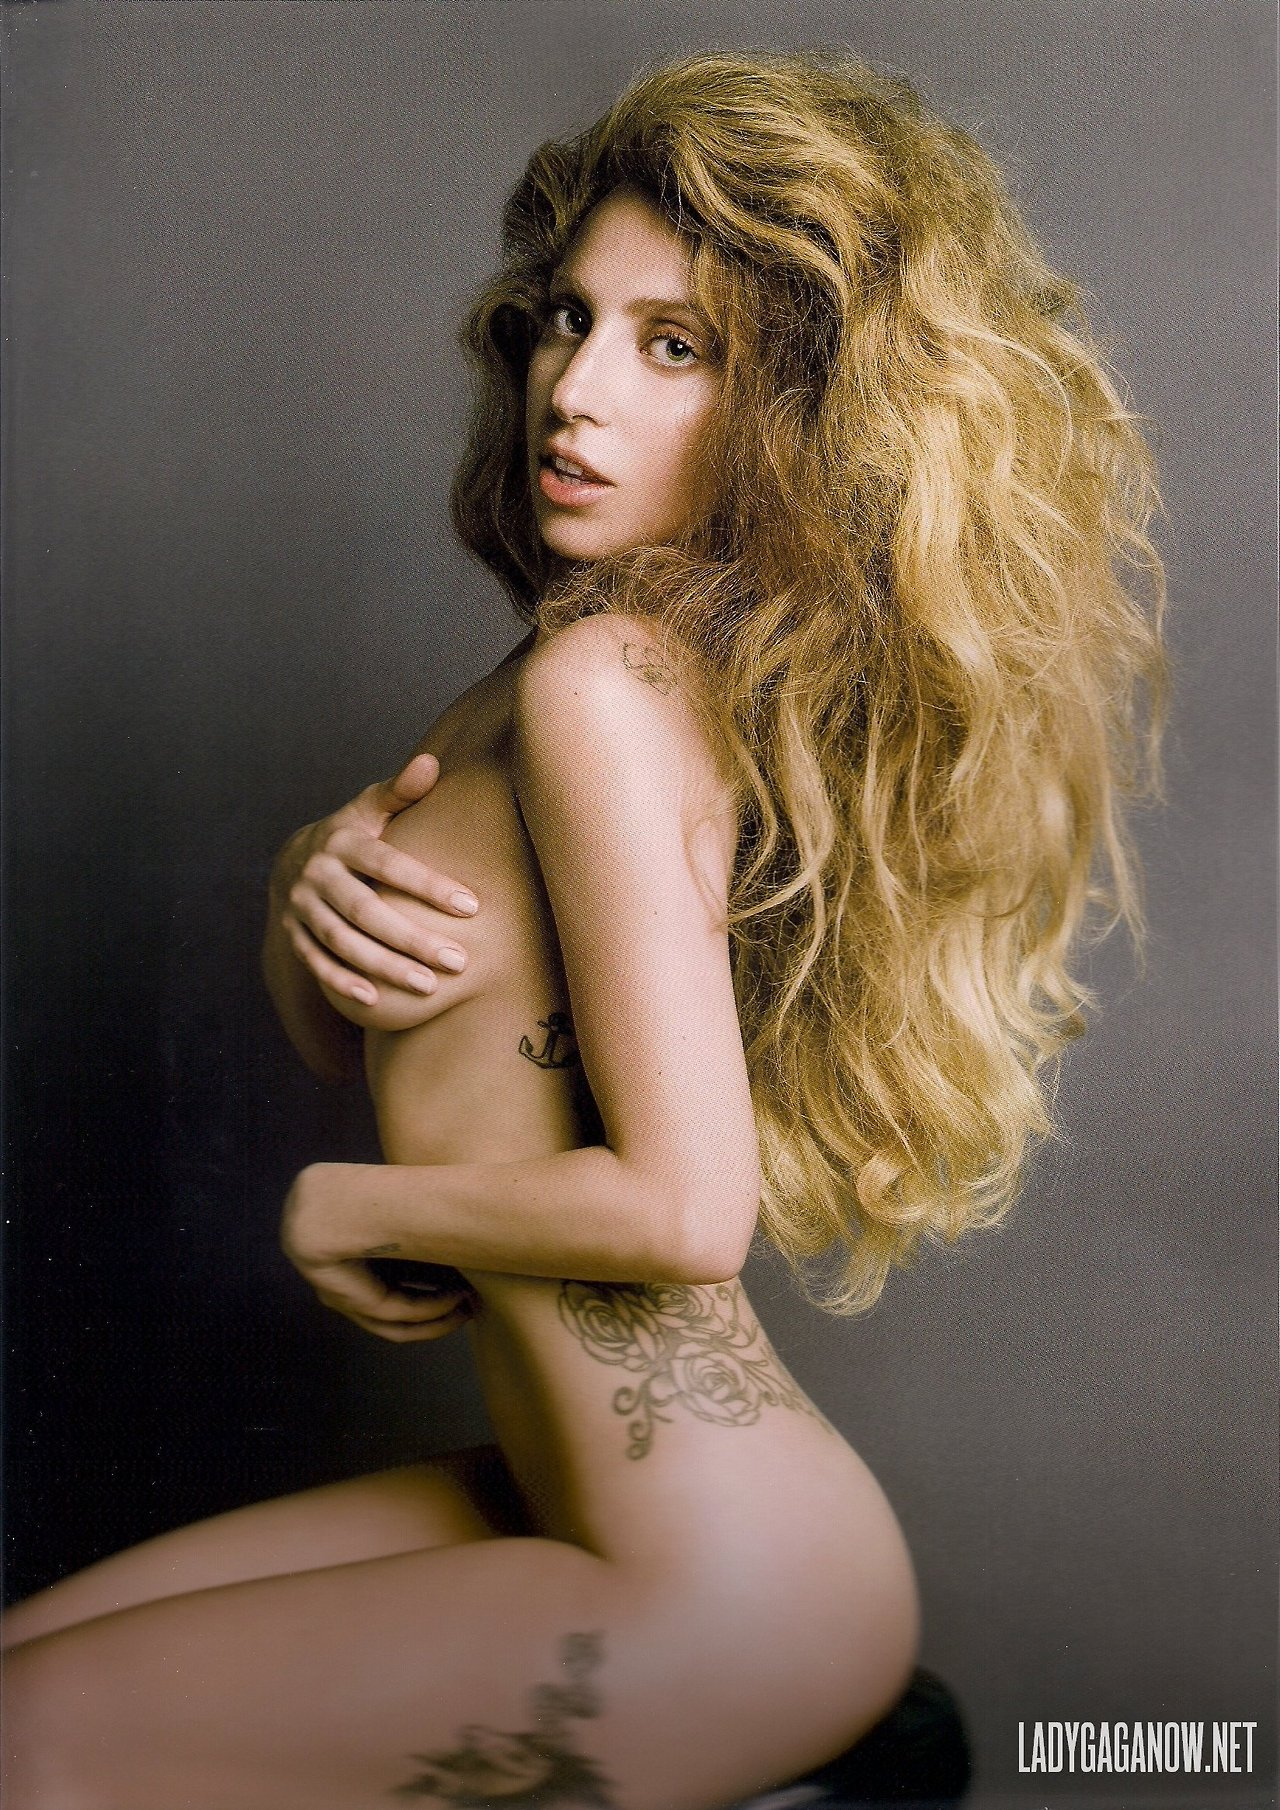 HQ Scans of Gaga's चित्रो for V Magazine